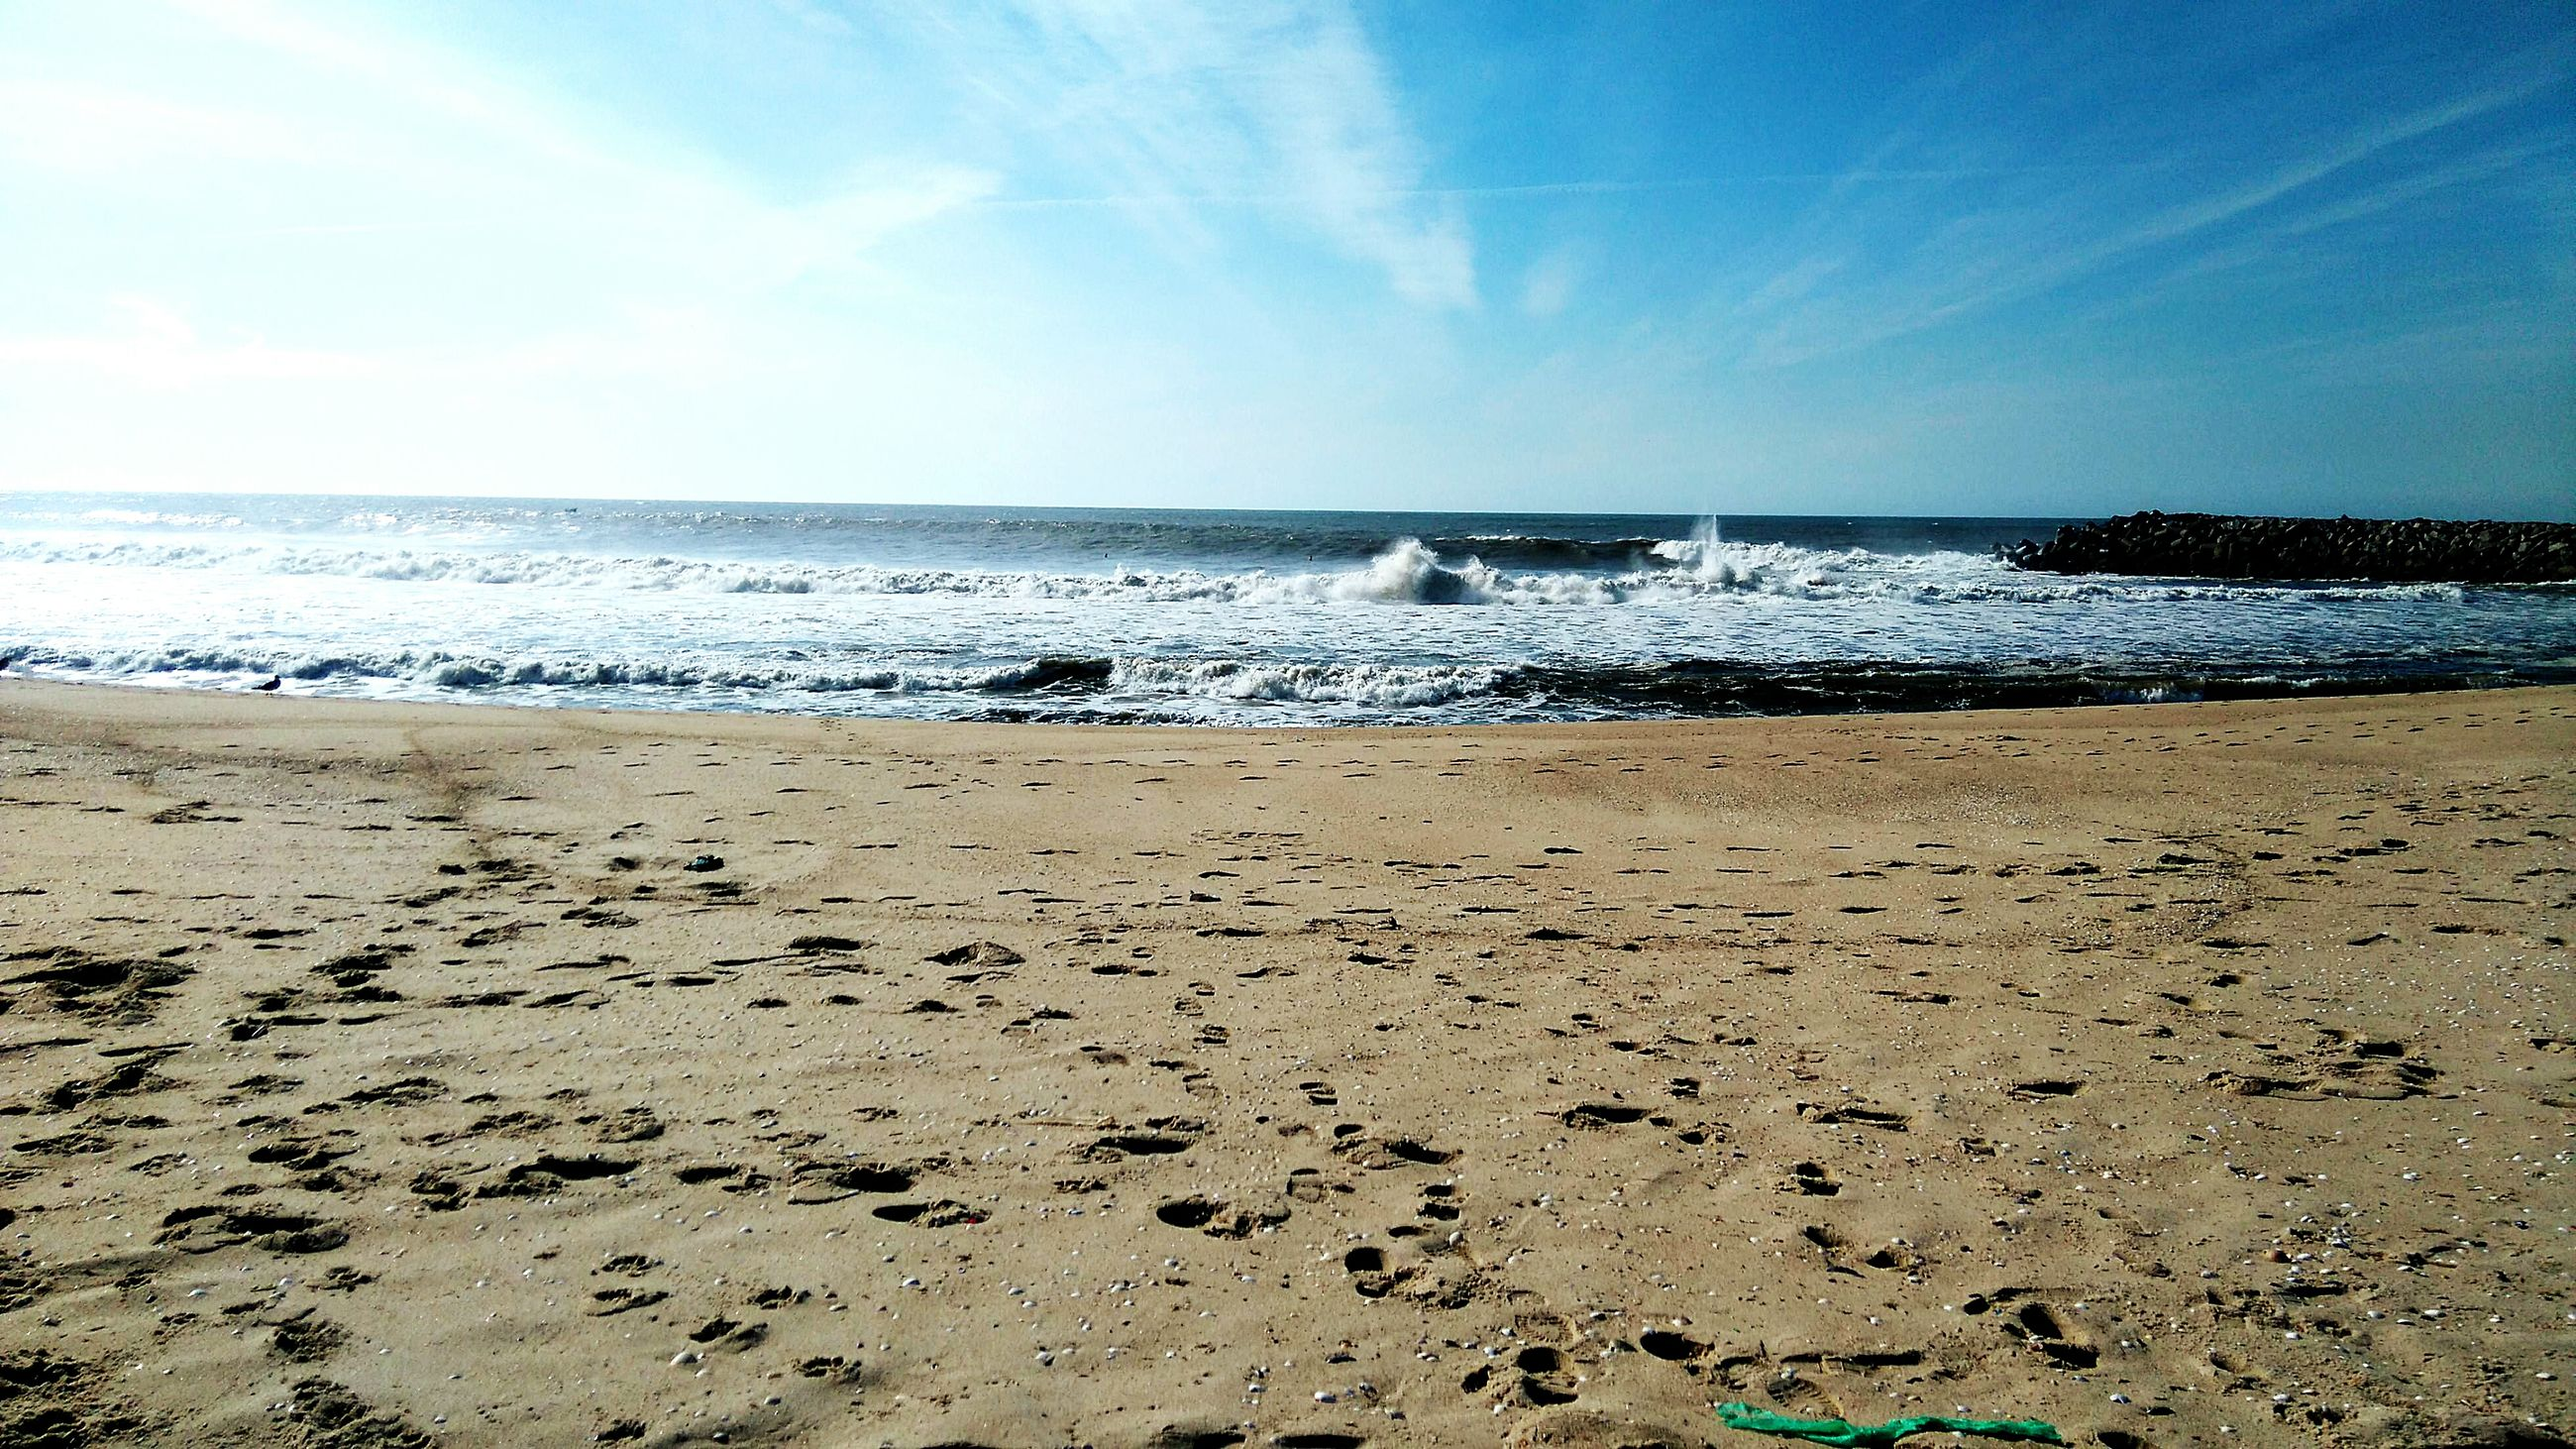 beach, sea, sand, water, shore, sky, horizon over water, tranquility, tranquil scene, scenics, beauty in nature, nature, blue, idyllic, day, coastline, cloud - sky, incidental people, outdoors, cloud